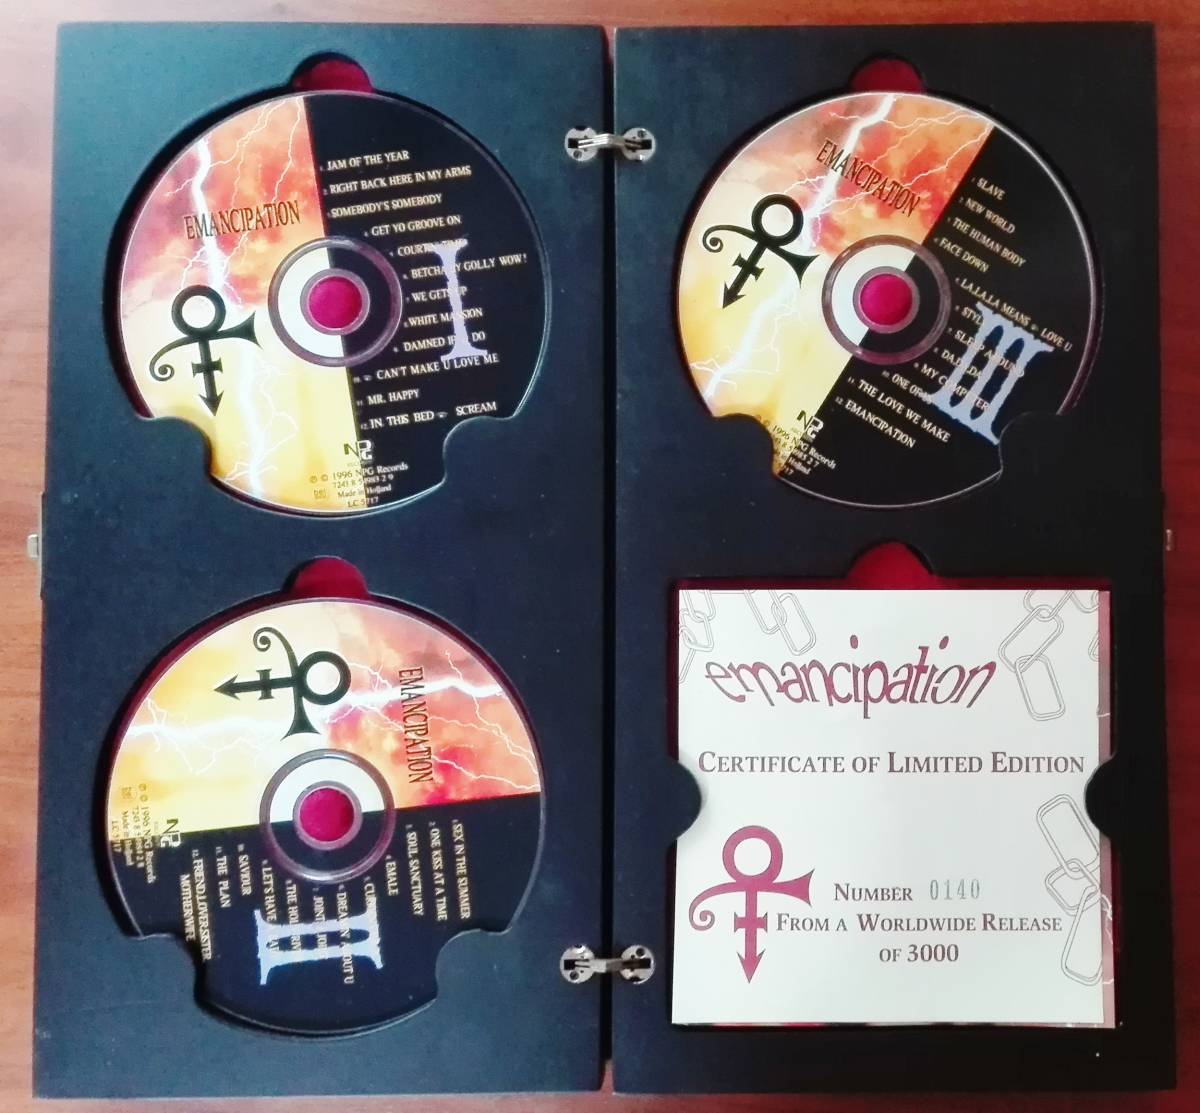 Prince - emancipation [CERTIFICATE OF LIMITED EDITION] WORLDWIDE RELEASE OF 3000_画像2